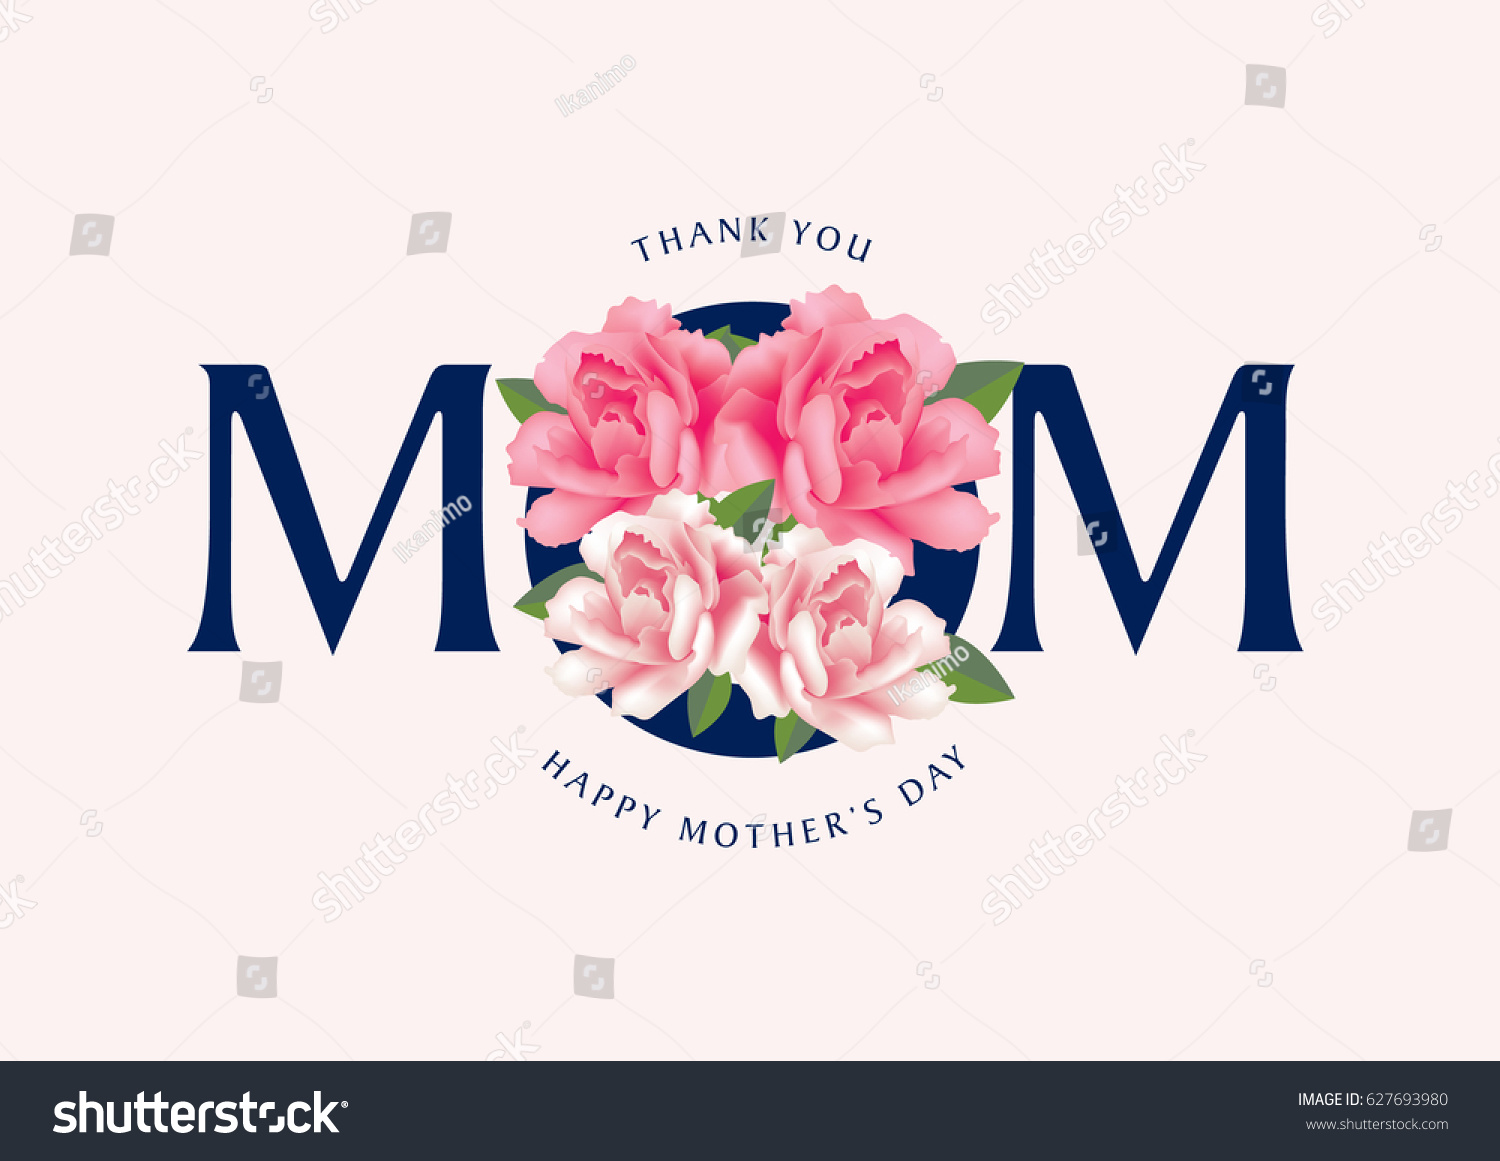 Mothers Day Greetings Thank You Mom Stock Vector Royalty Free